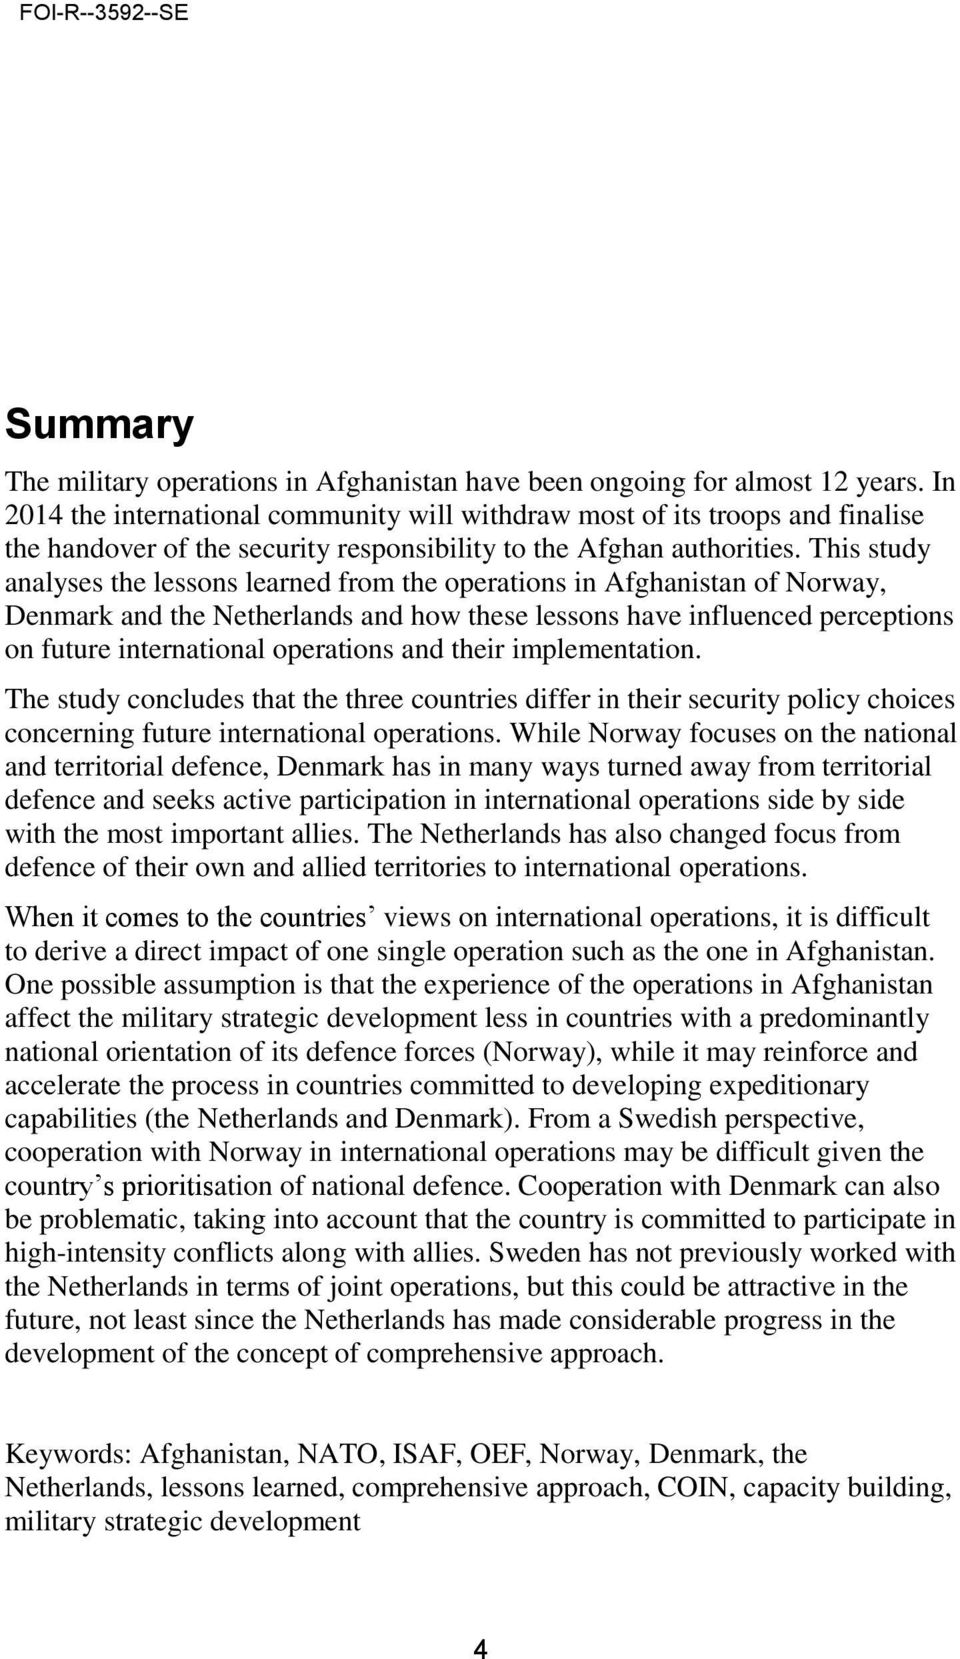 This study analyses the lessons learned from the operations in Afghanistan of Norway, Denmark and the Netherlands and how these lessons have influenced perceptions on future international operations